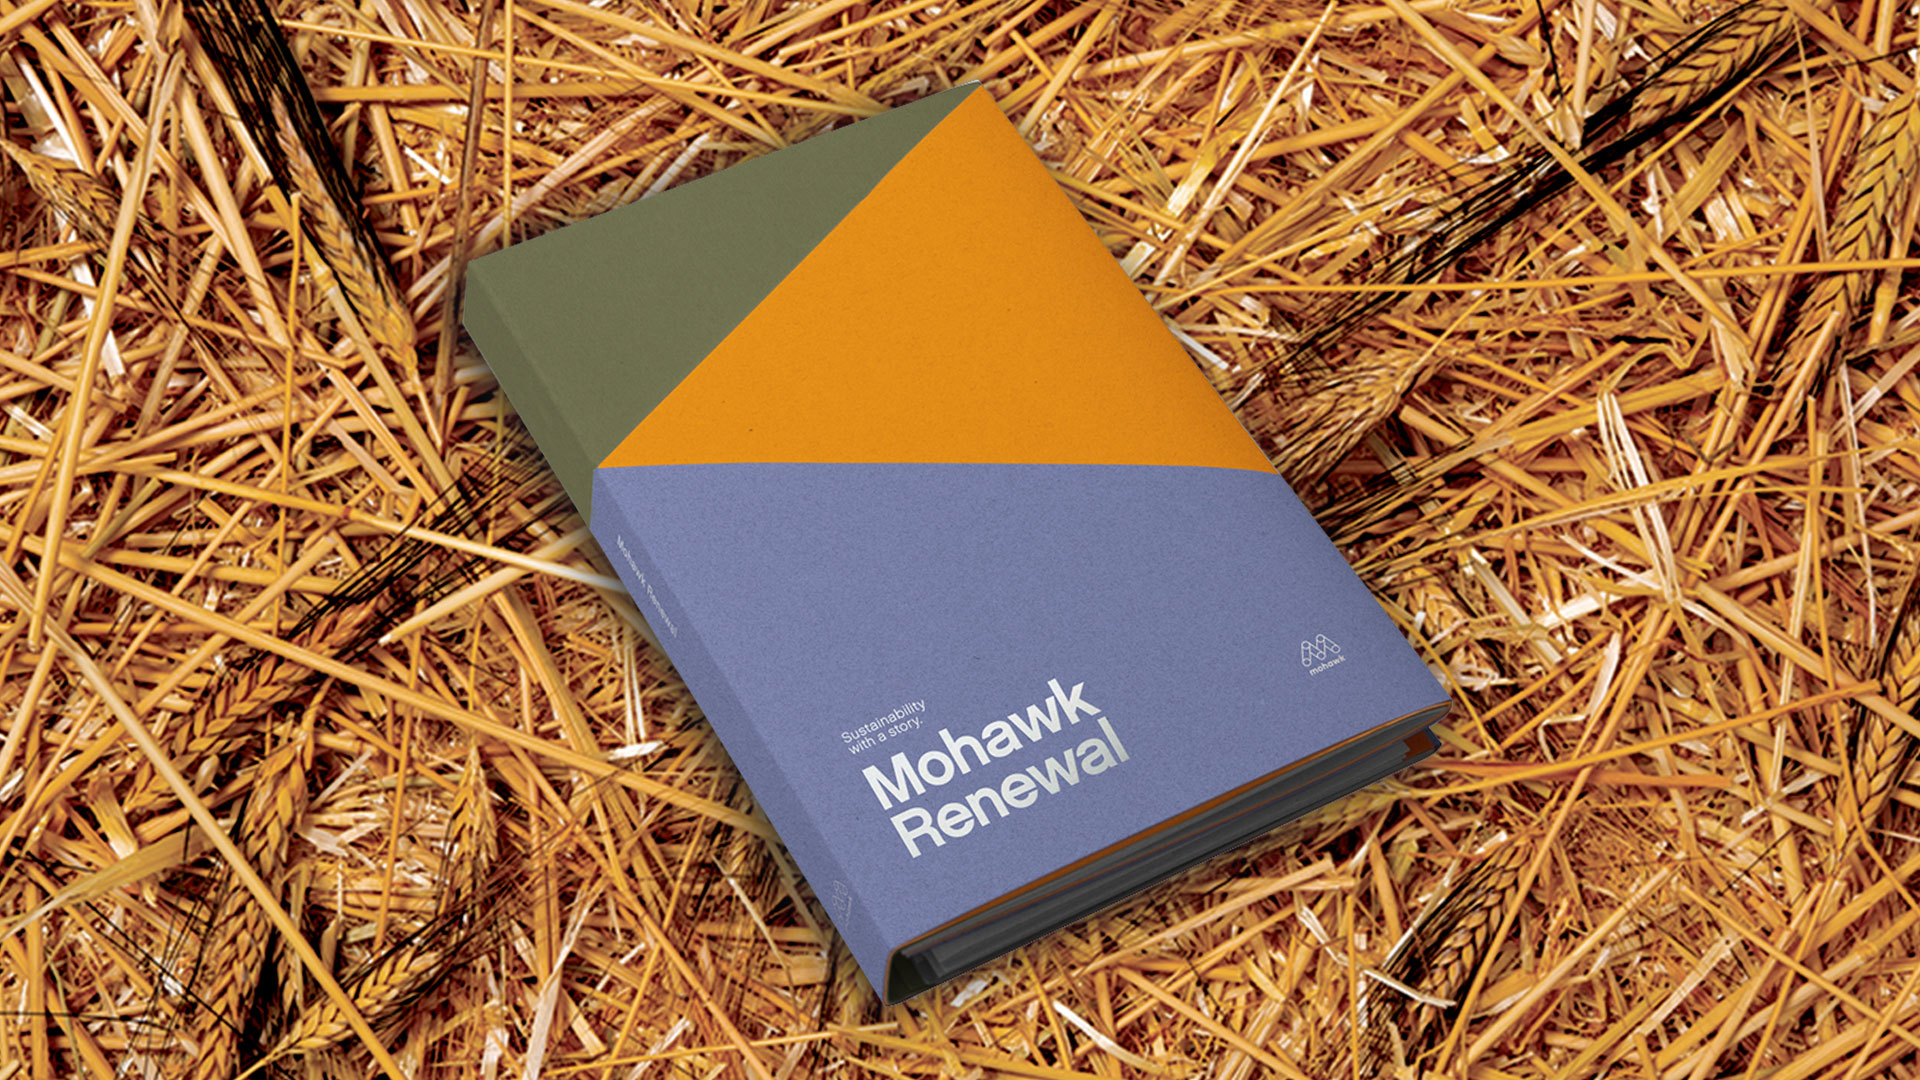 The Mohawk Renewal Swatchbook - PaperSpecs